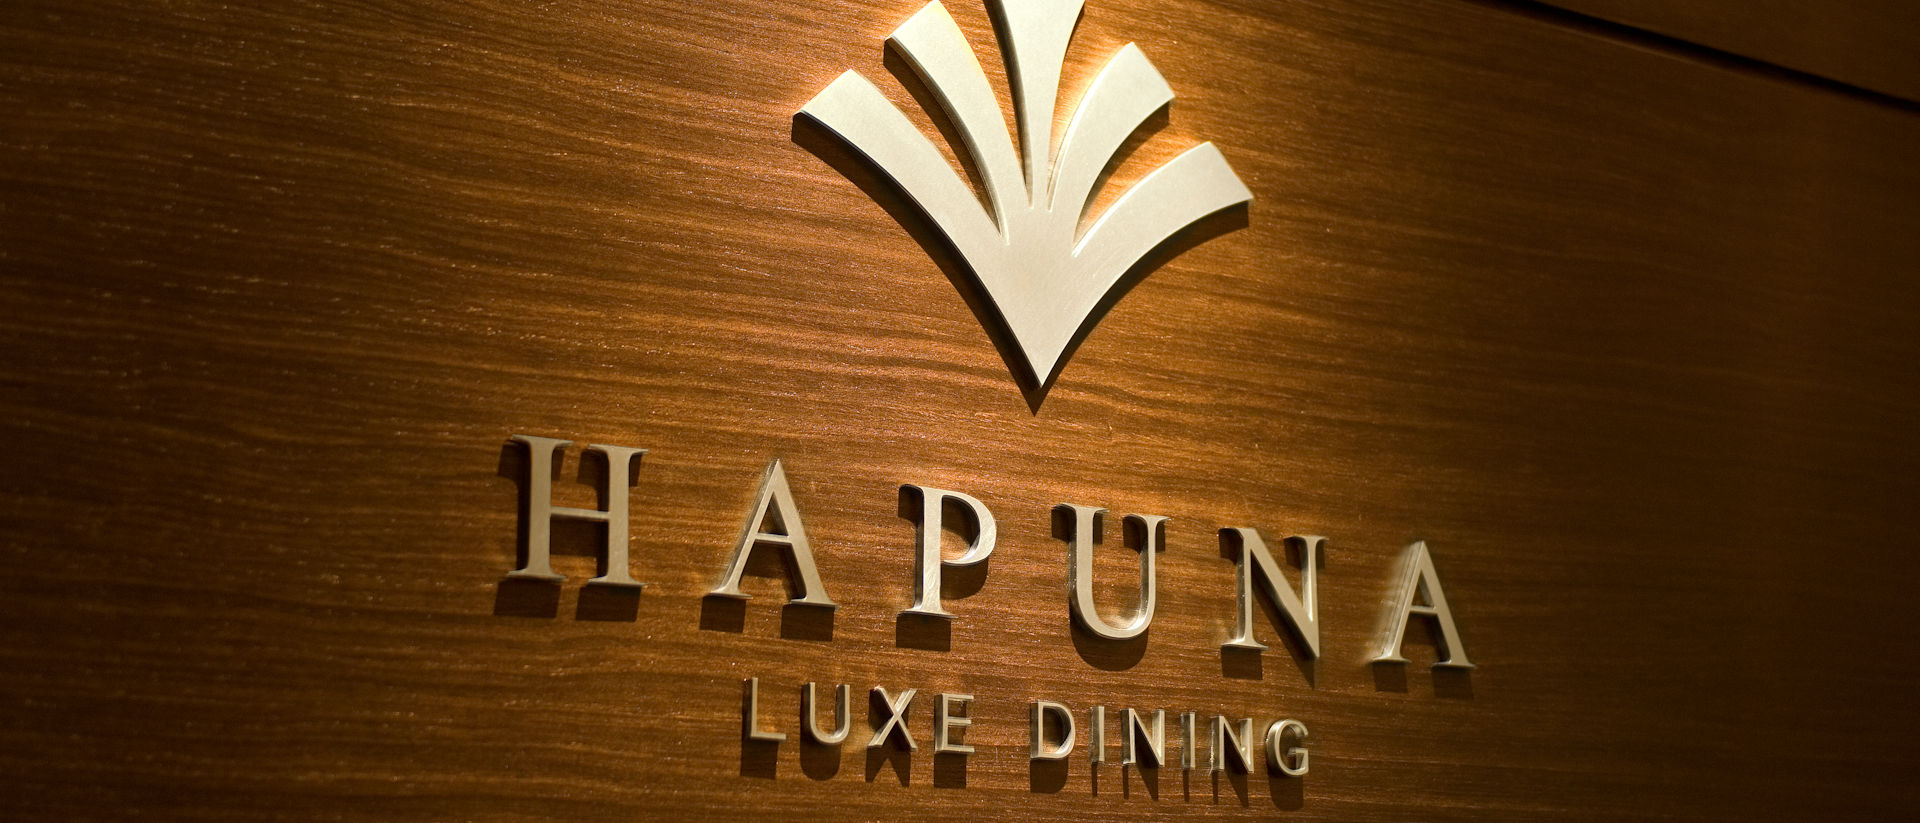 LUXE DINING HAPUNA餐廳